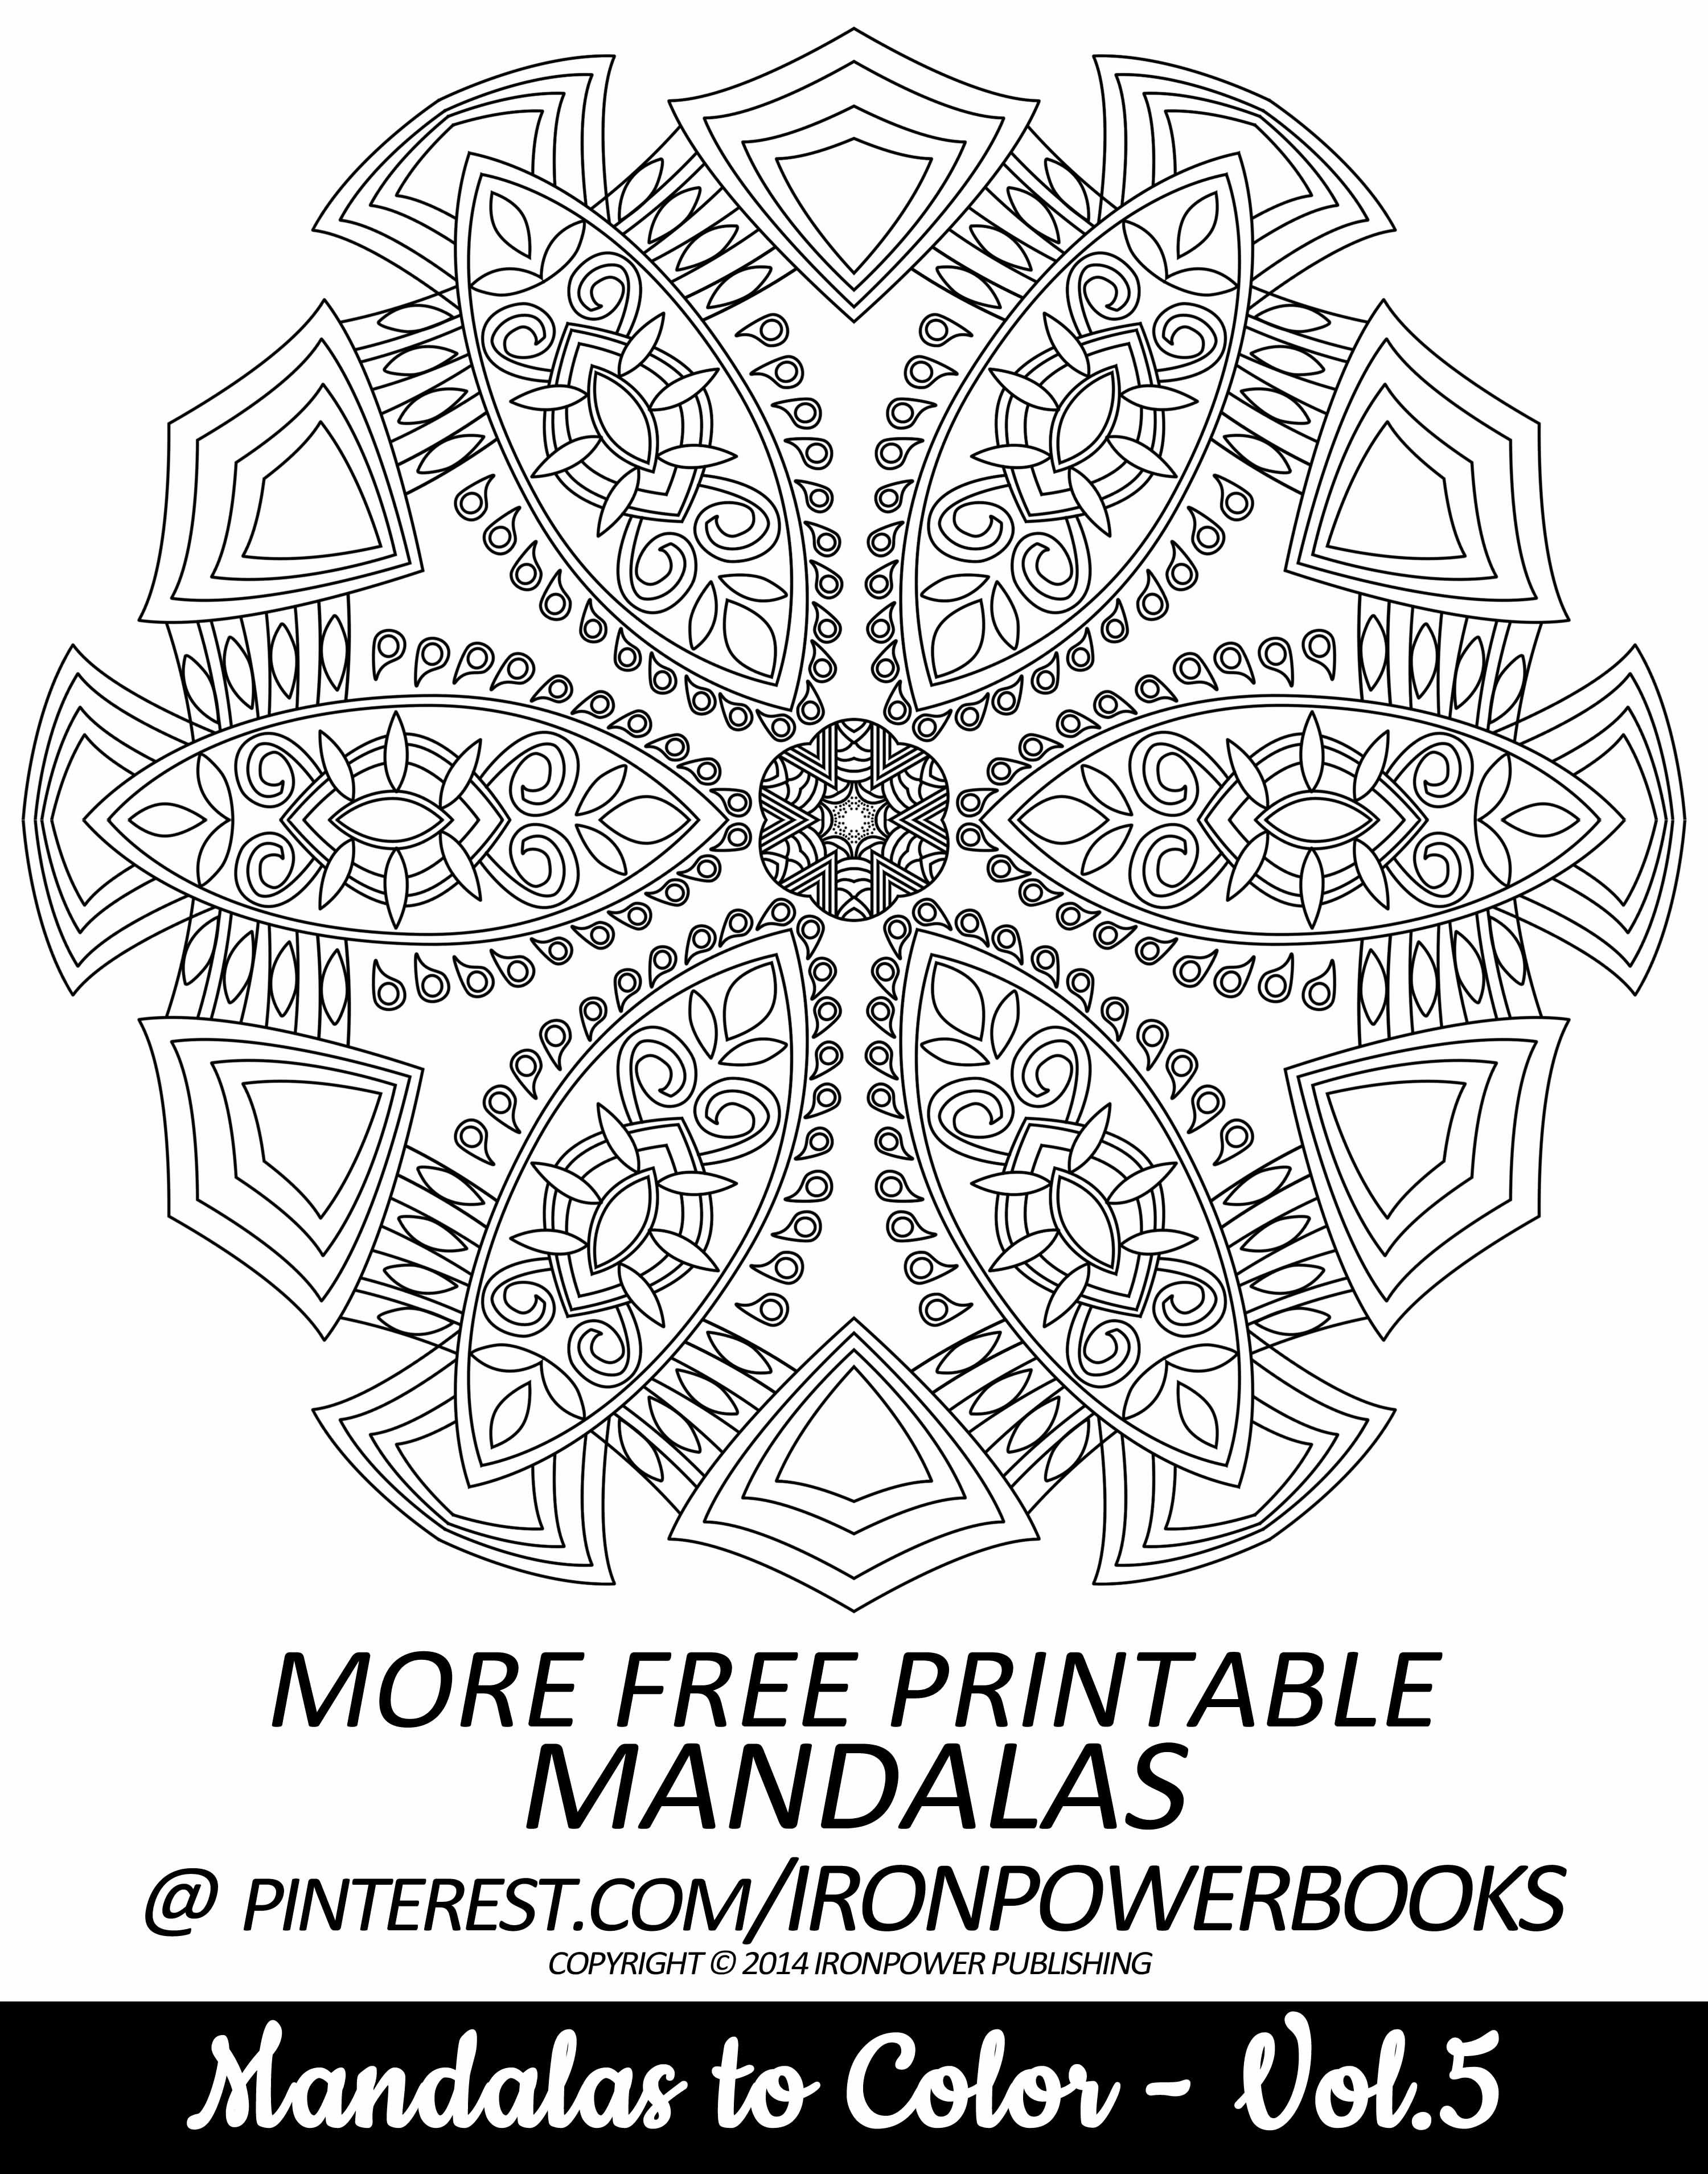 Mandala coloring pages amazon - Free Printable Mandala Coloring Page From Ironpowerbooks Mandalas To Color Volume 5 Available